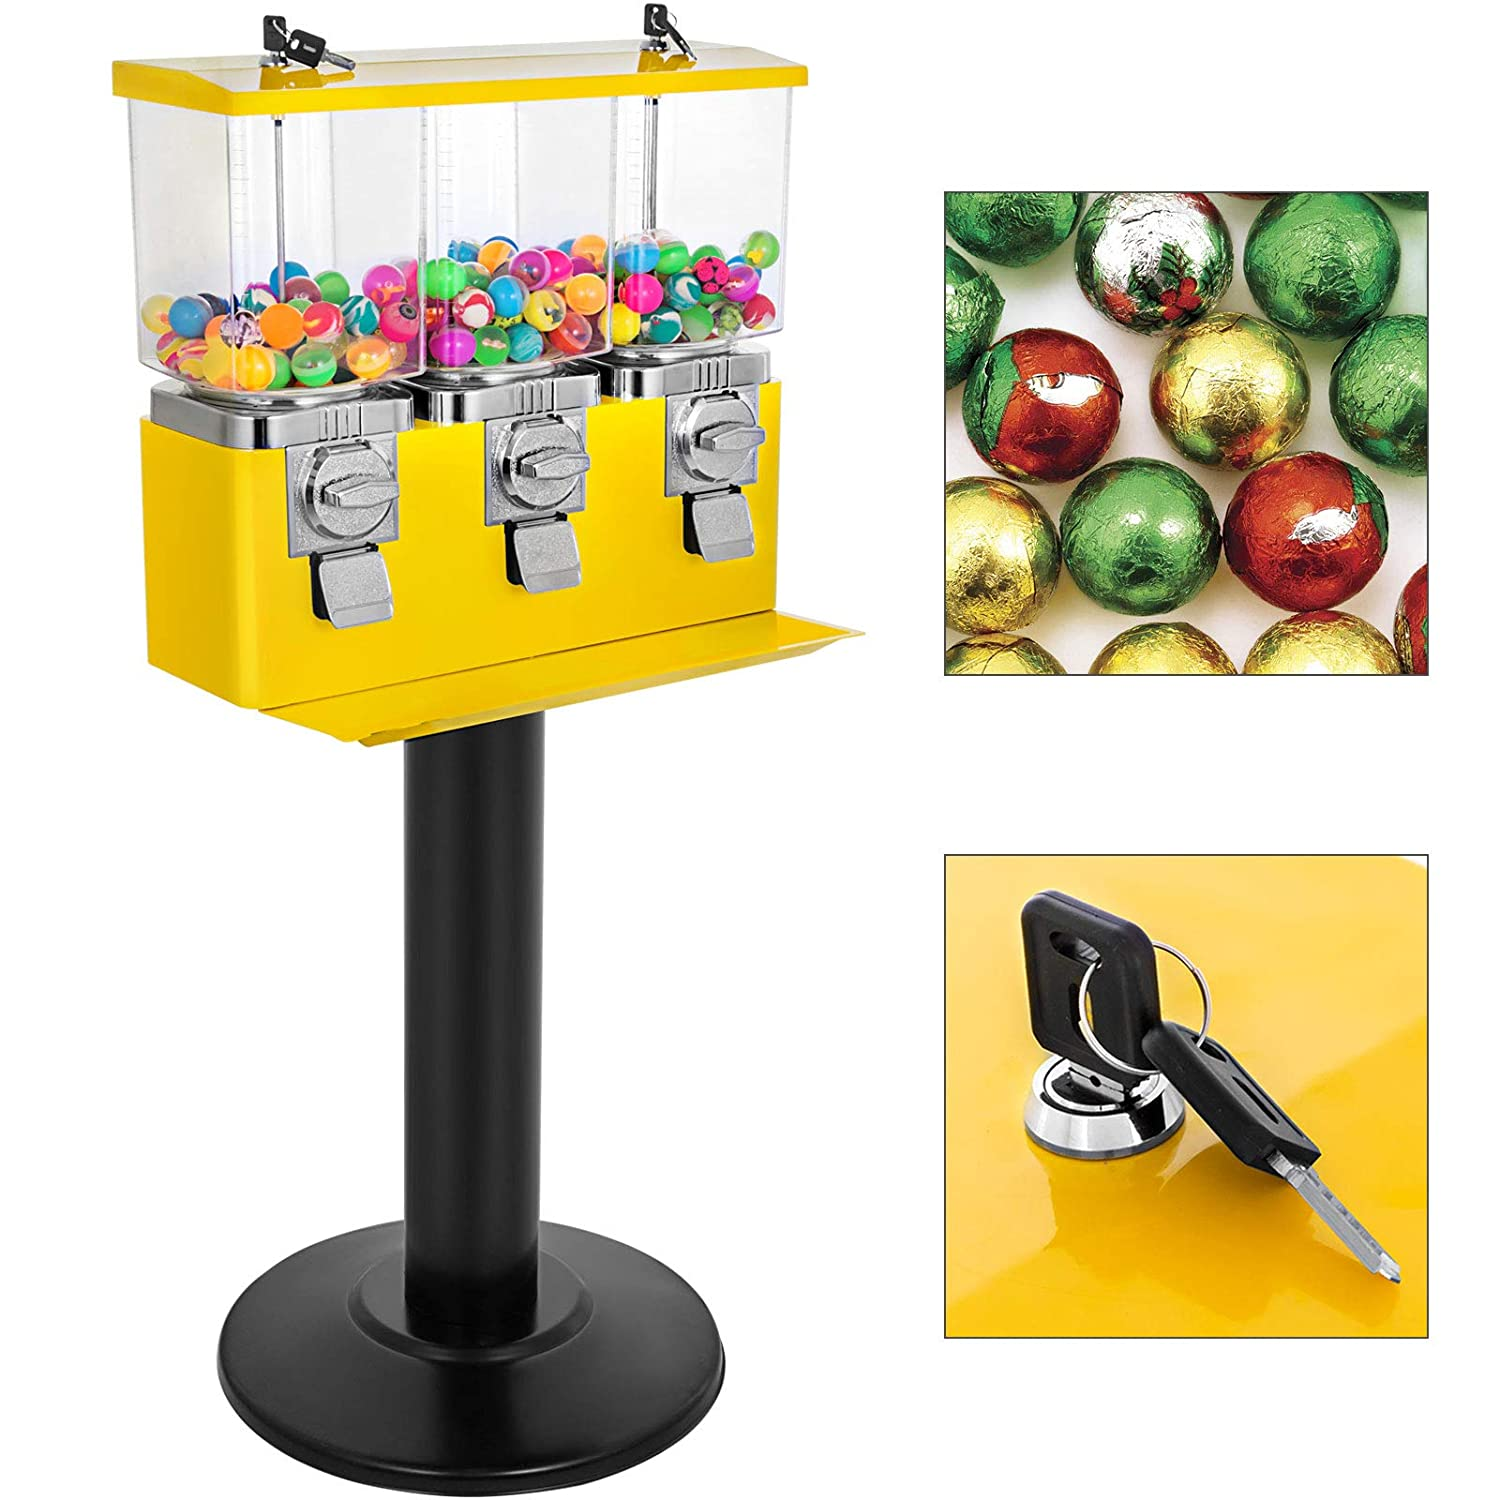 VBENLEM Triple Ranking integrated 1st place Head Candy Vending Max 67% OFF Machine Vendin Gumball 1-inch